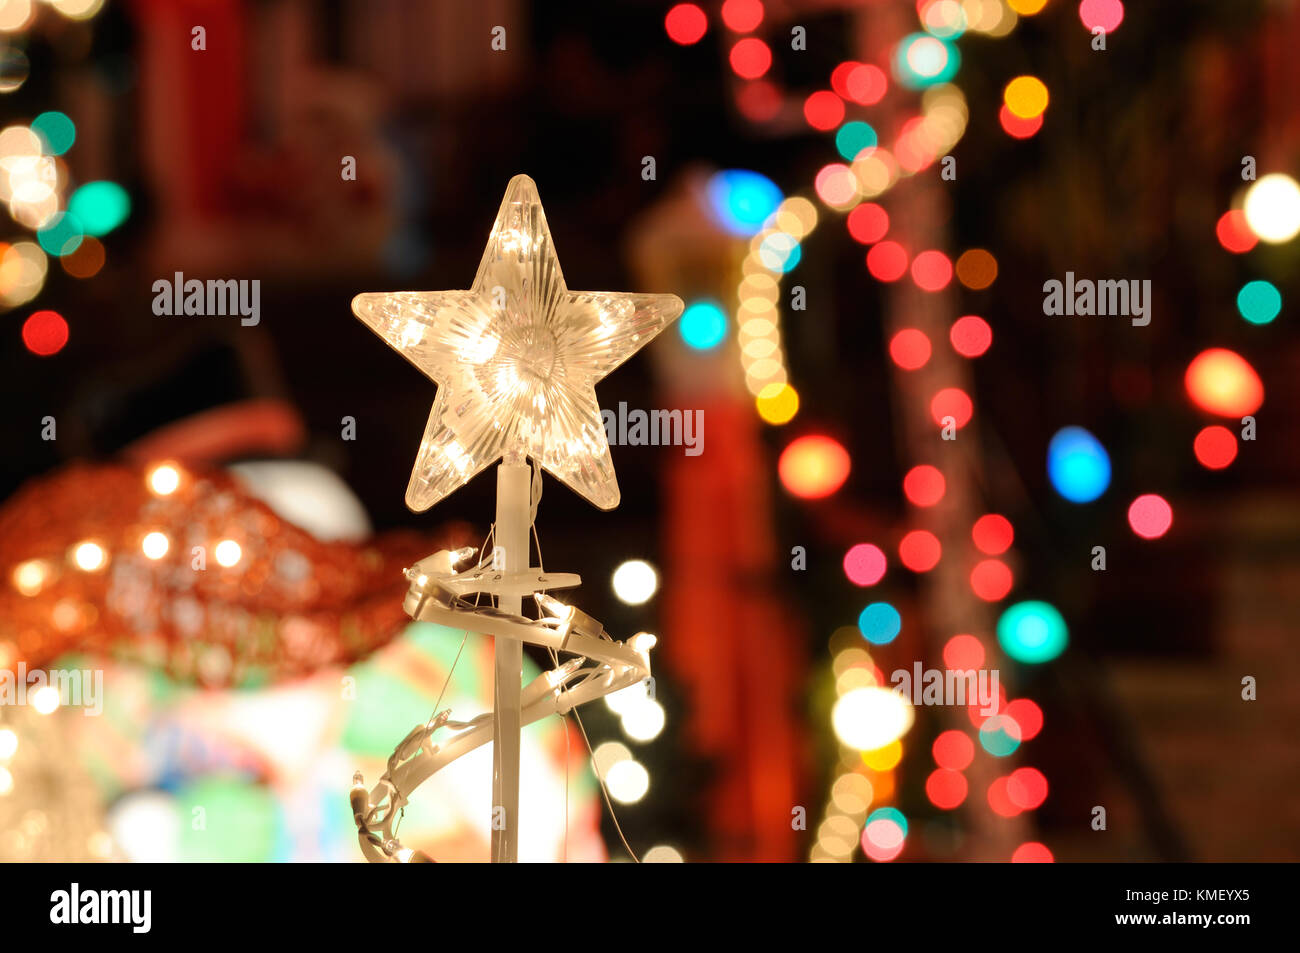 Christmas lights background nativity star blurred lights and stock christmas lights background nativity star blurred lights and outdoor decorations aloadofball Images